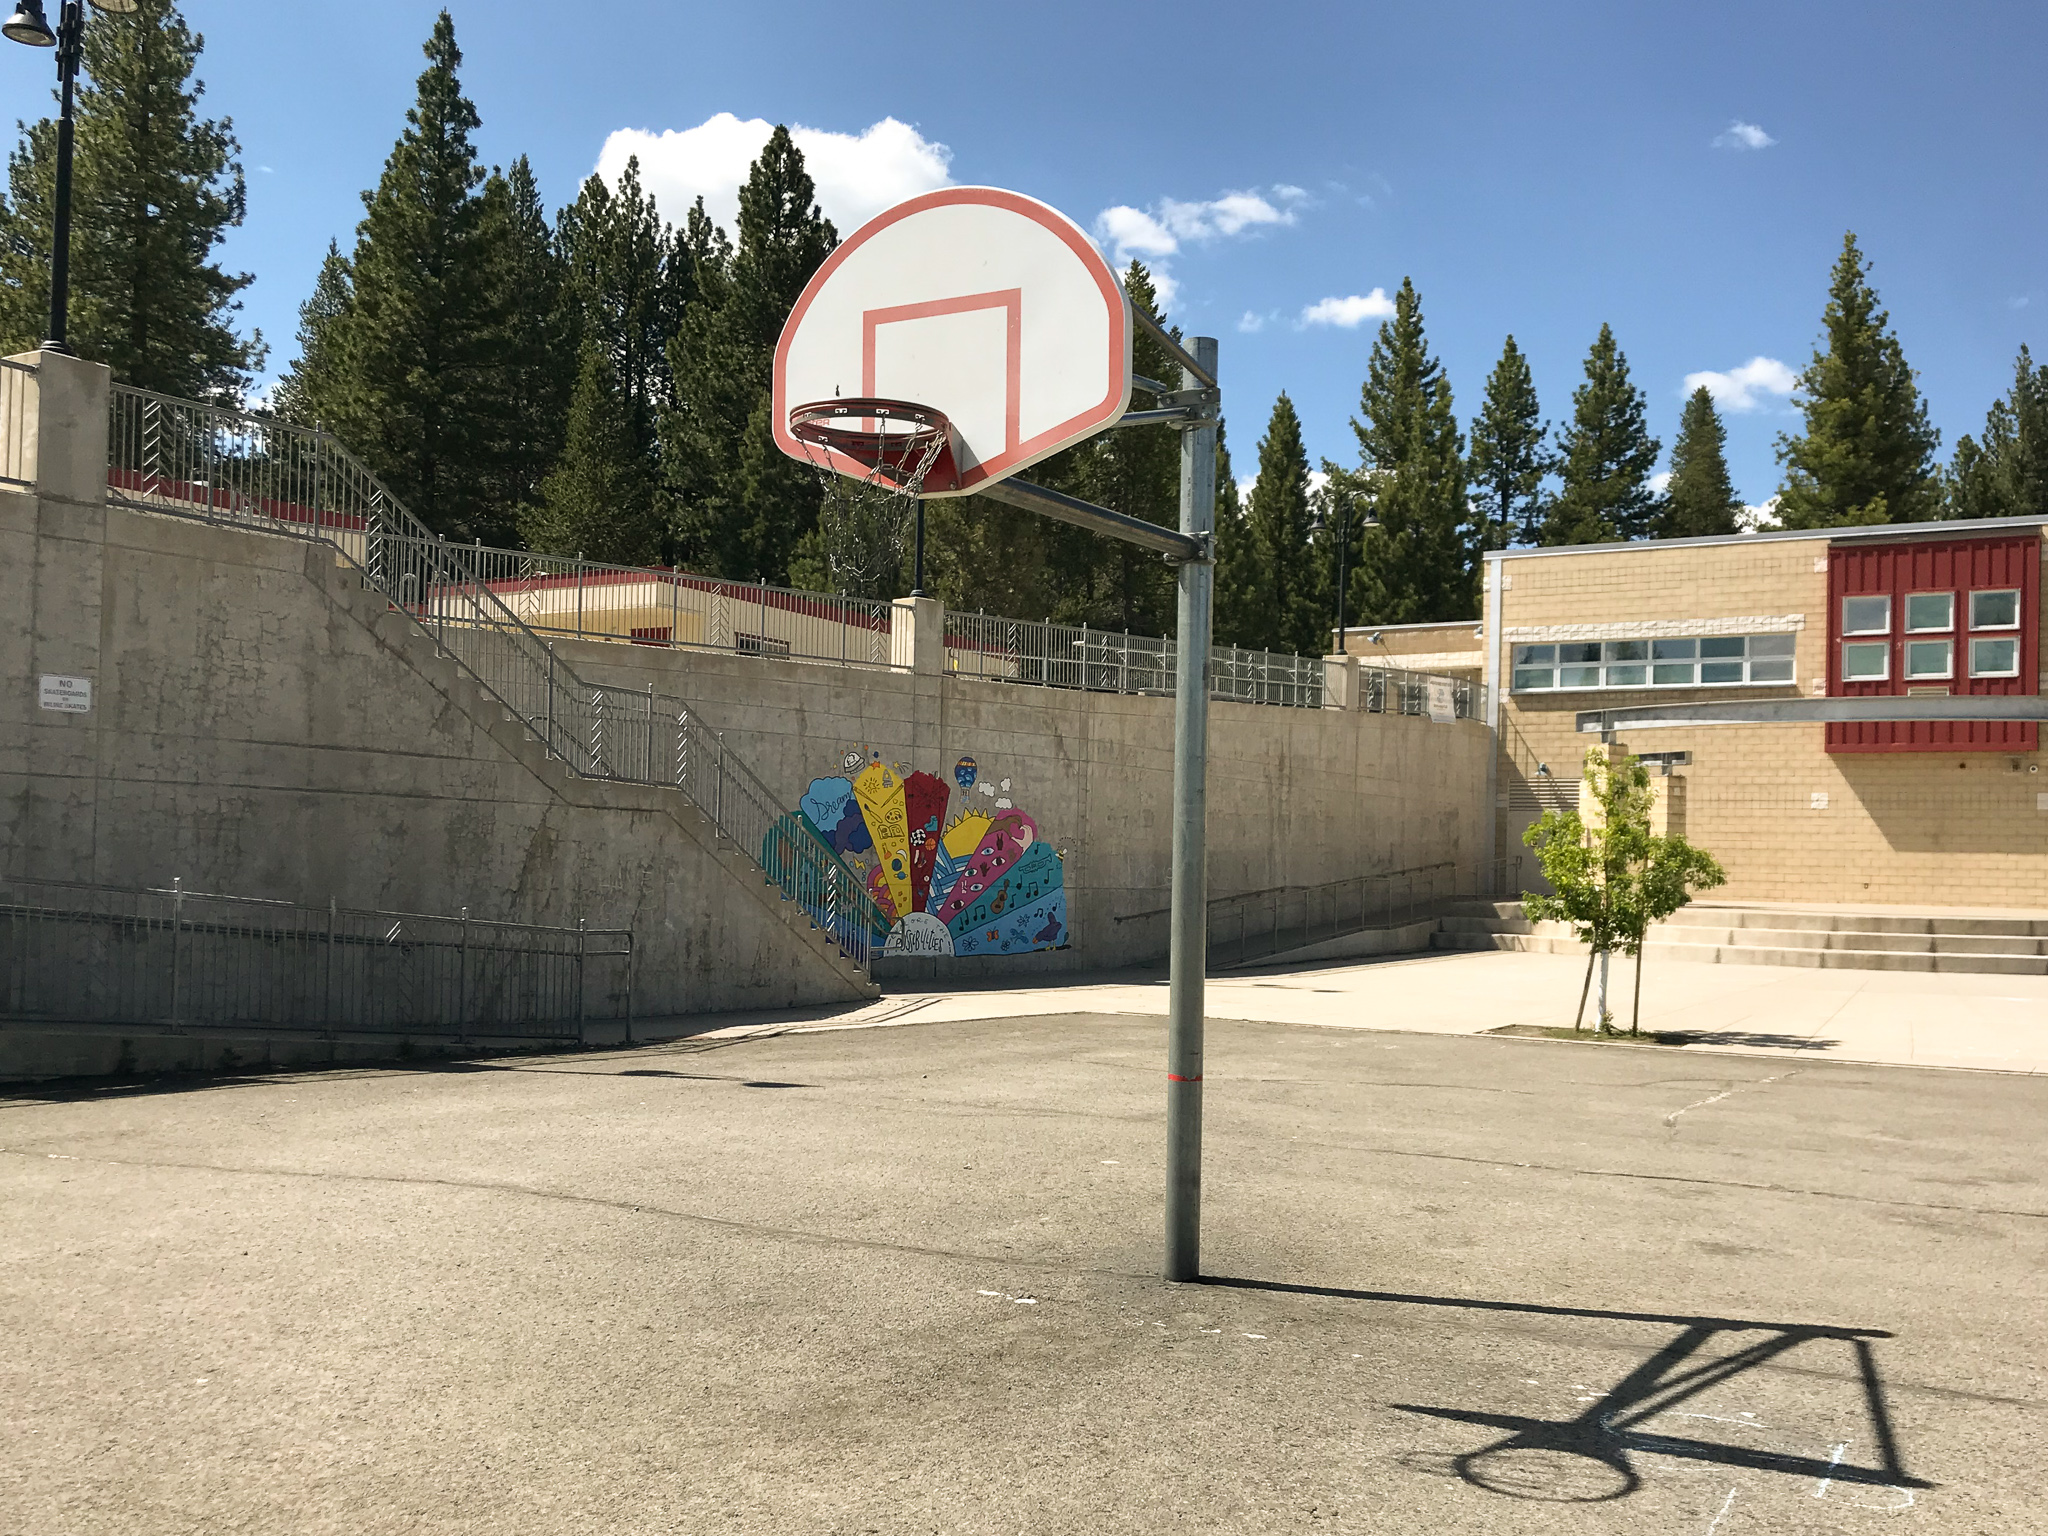 Truckee basketball courts